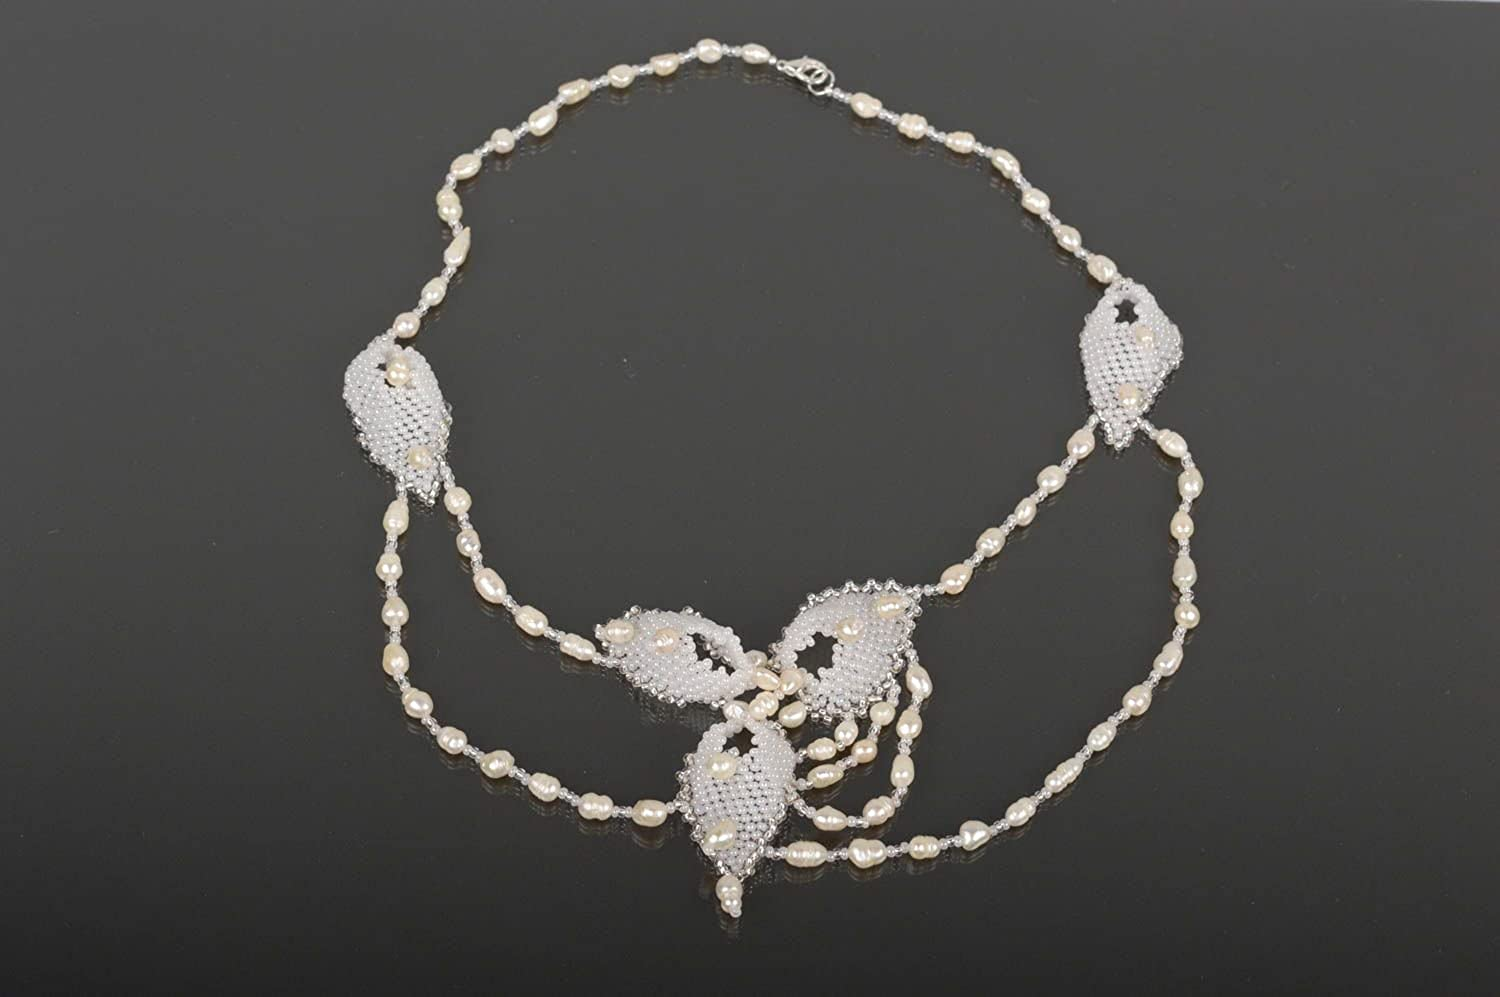 Handmade Beaded Necklace Pearl Necklace Wedding Jewelry Bridal Outfit